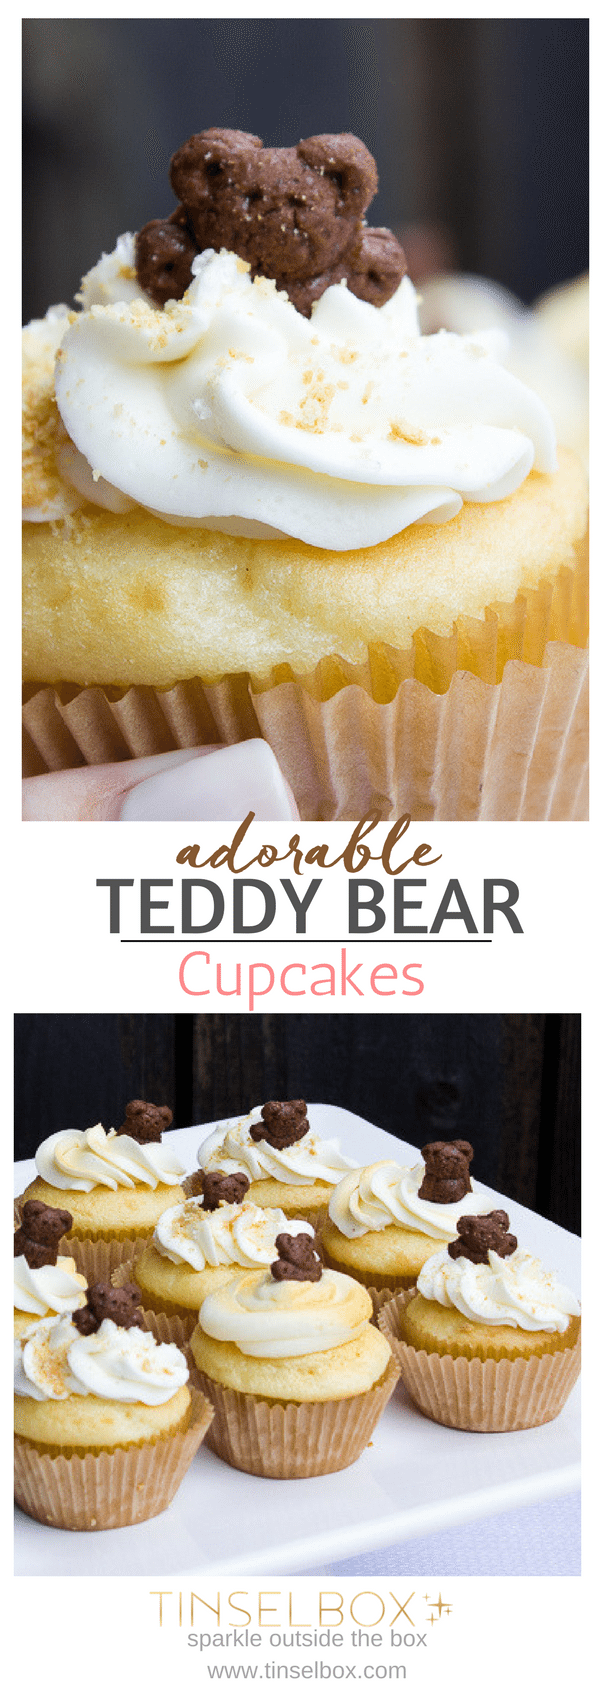 Teddy Graham Cupcakes - Teddy Bear